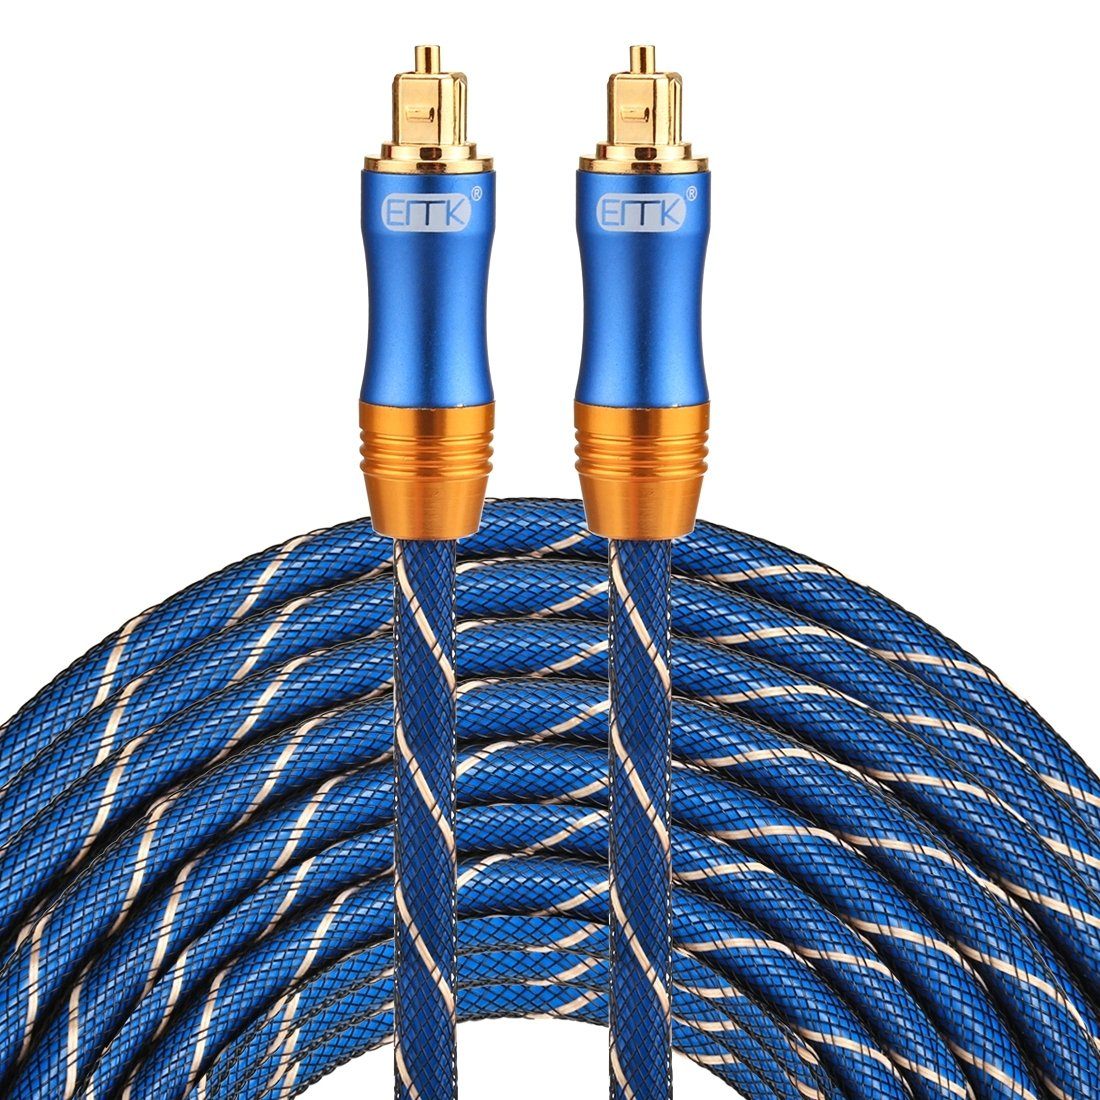 Optical Cables, EMK LSYJ-A 25m OD6.0mm Gold Plated Metal Head Toslink Male to Male Digital Optical Audio Cable